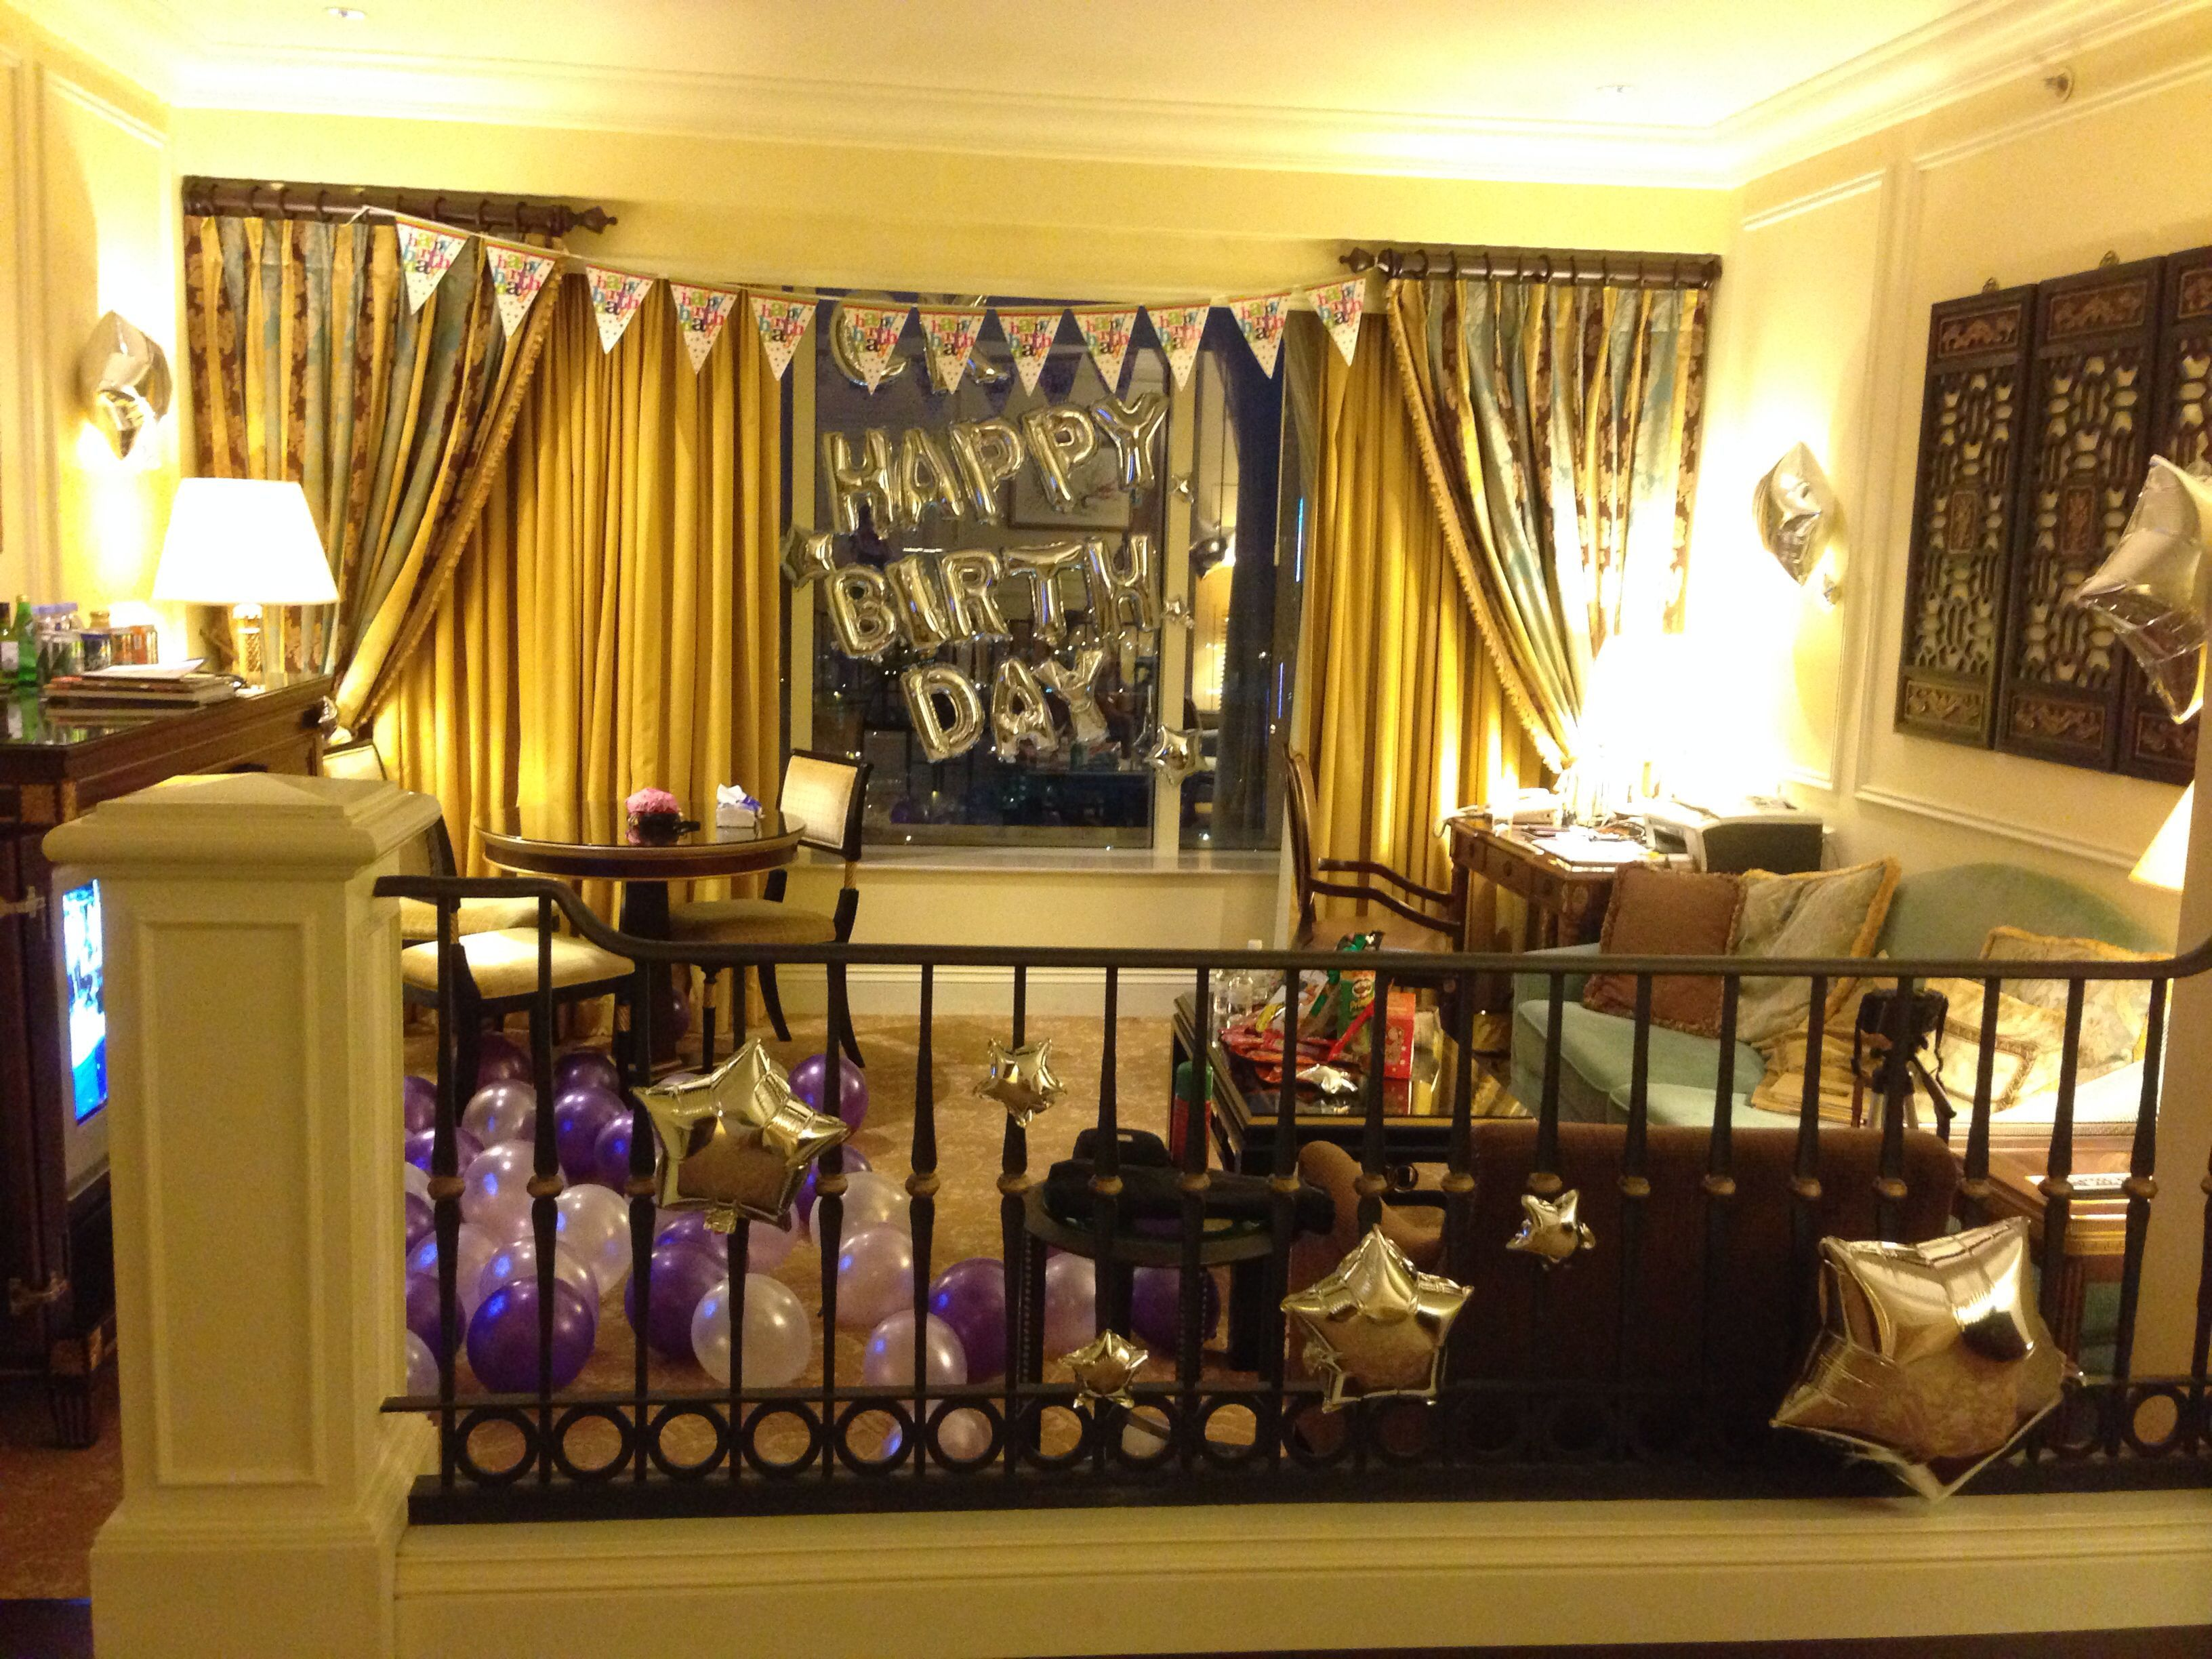 Decorate A Hotel Room For Birthday Parties Hotel Modern Kitchen Decor Decoration Cuisine Decorat In 2020 Hotel Birthday Parties Birthday Room Decorations Hotels Room